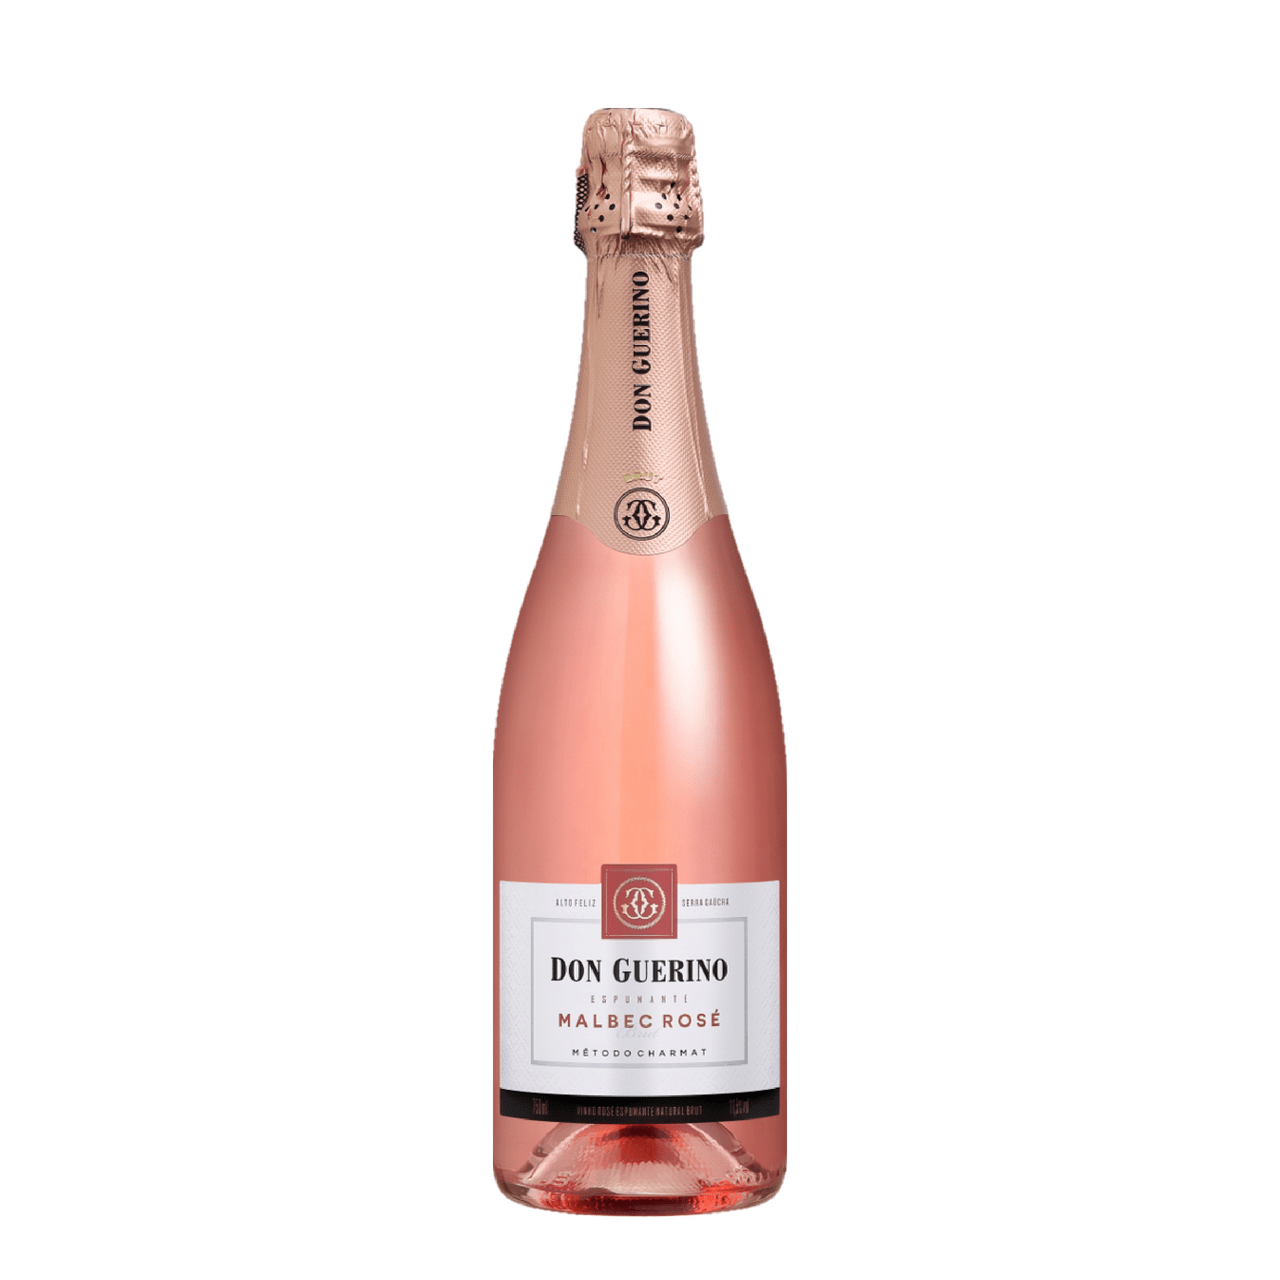 Espumante Don Guerino Malbec Rose